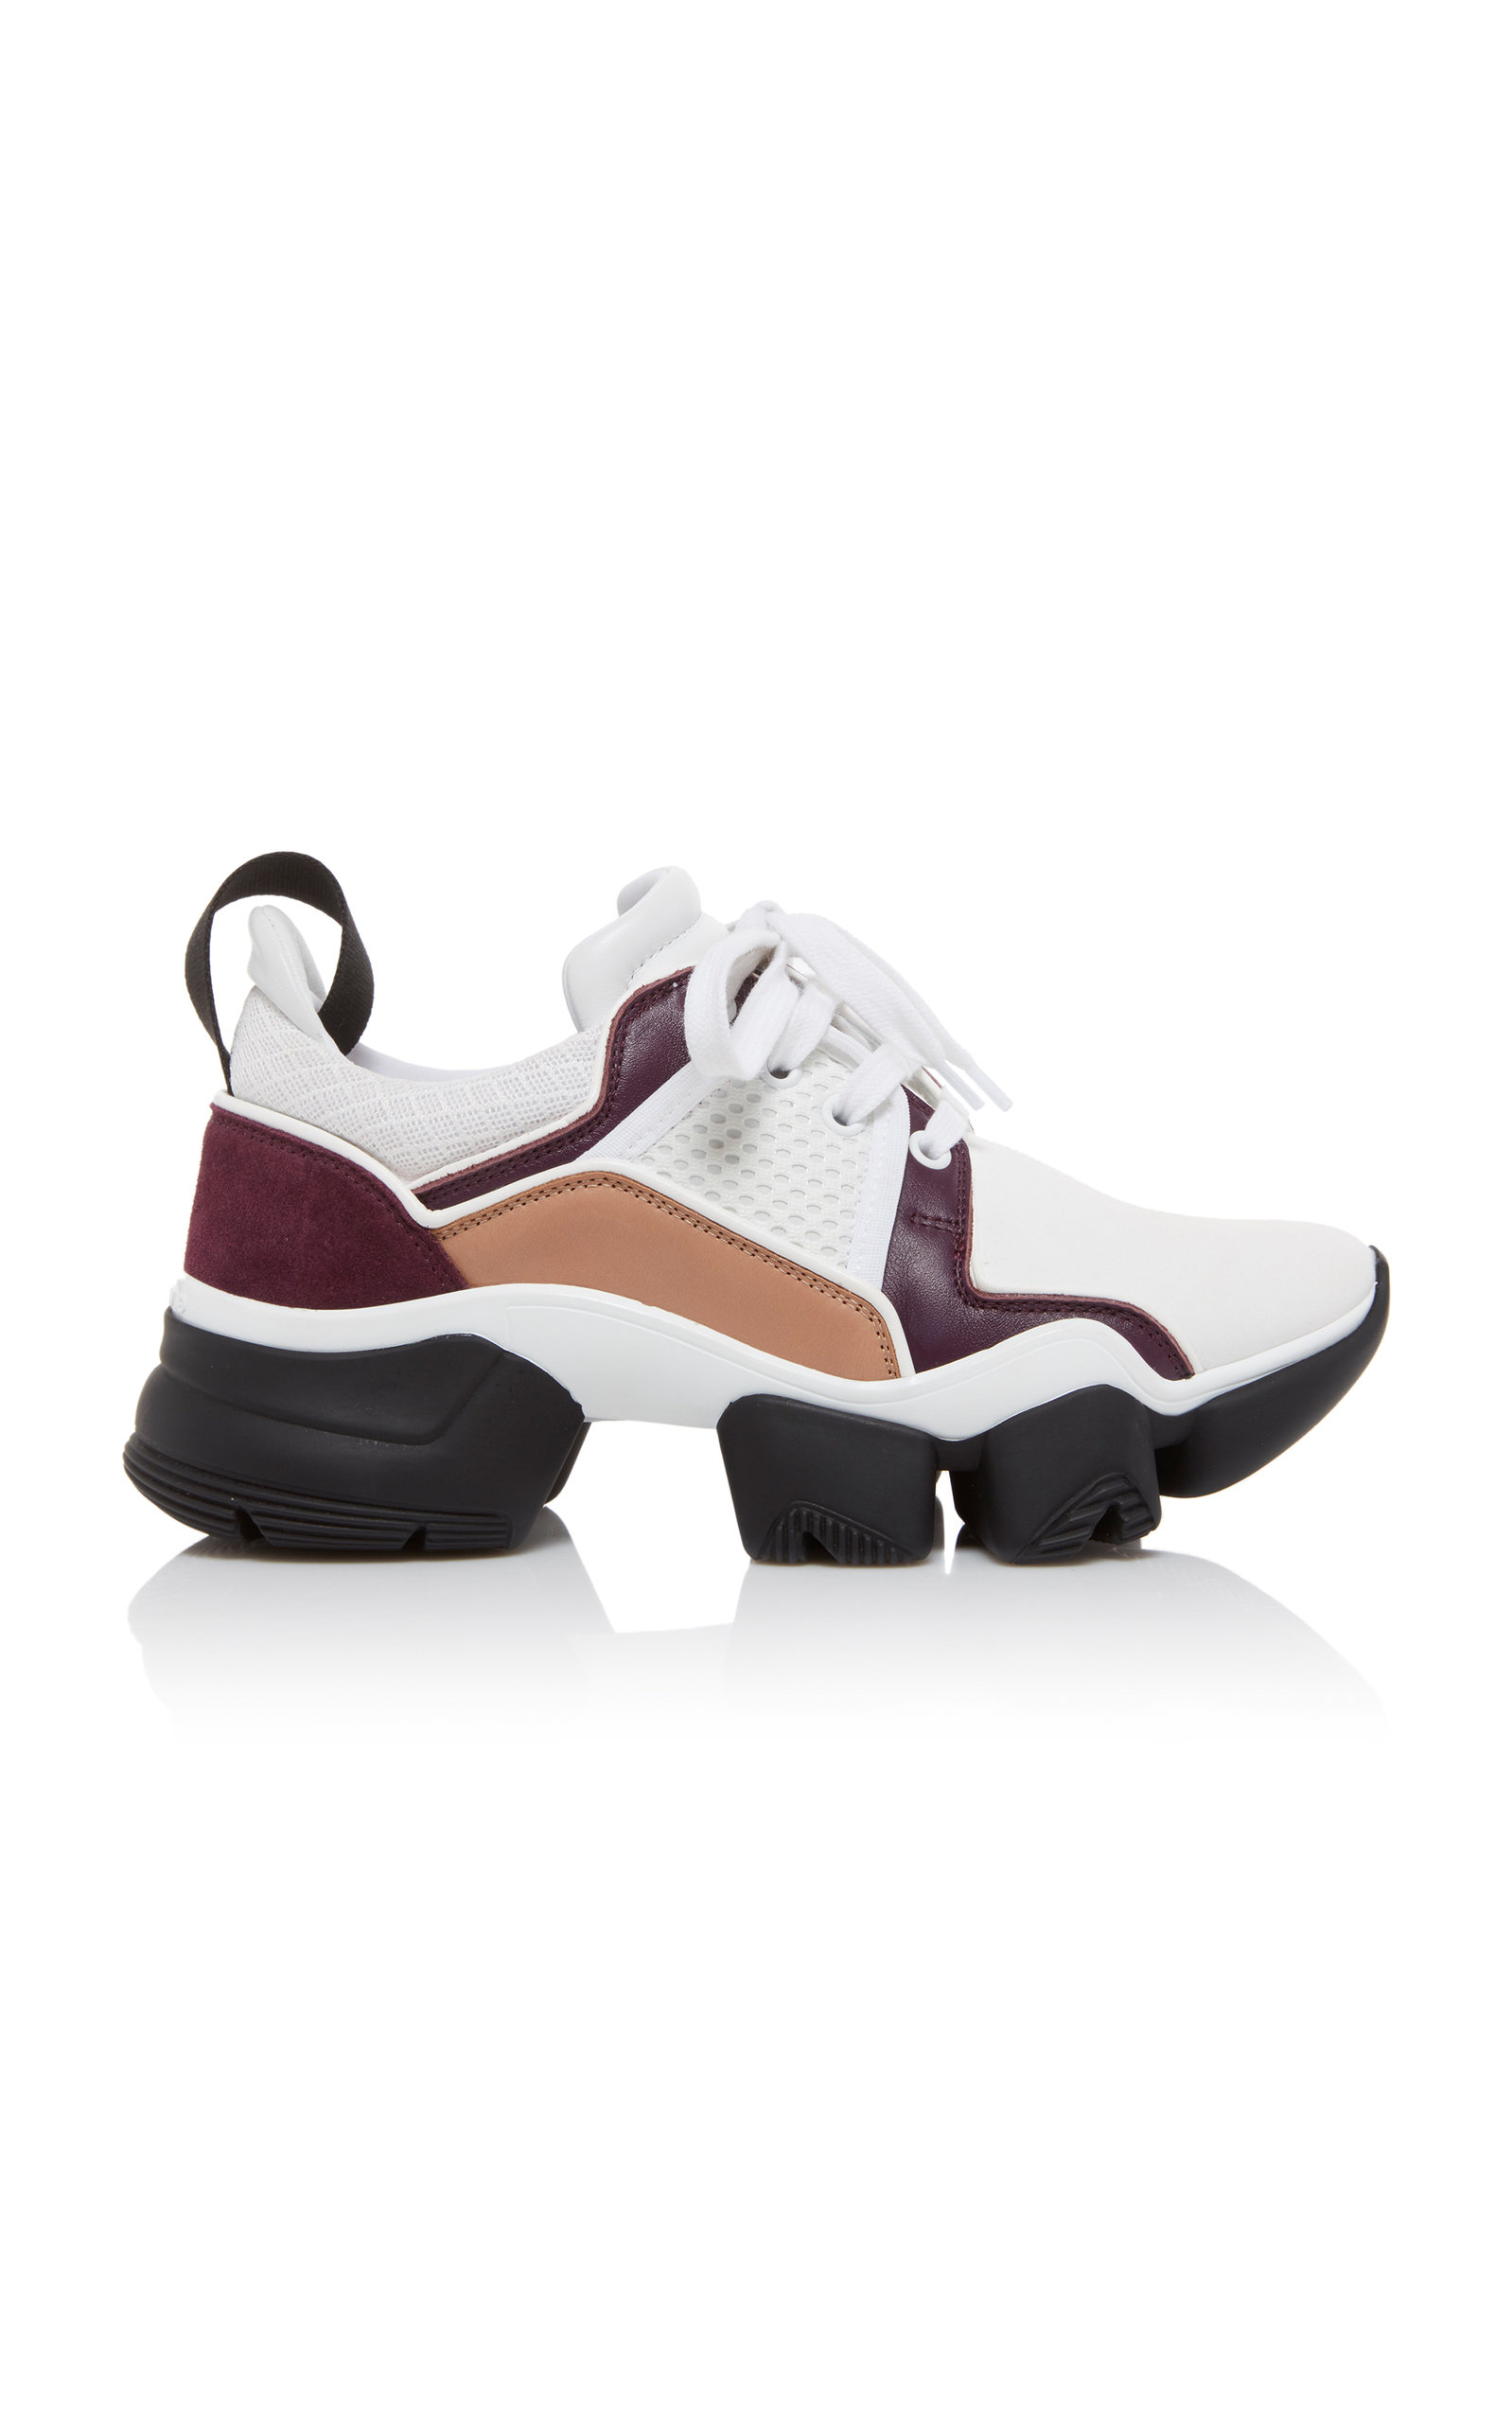 Jaw Low-Top Leather Sneakers by Givenchy   Moda Operandi ac7ff715d1